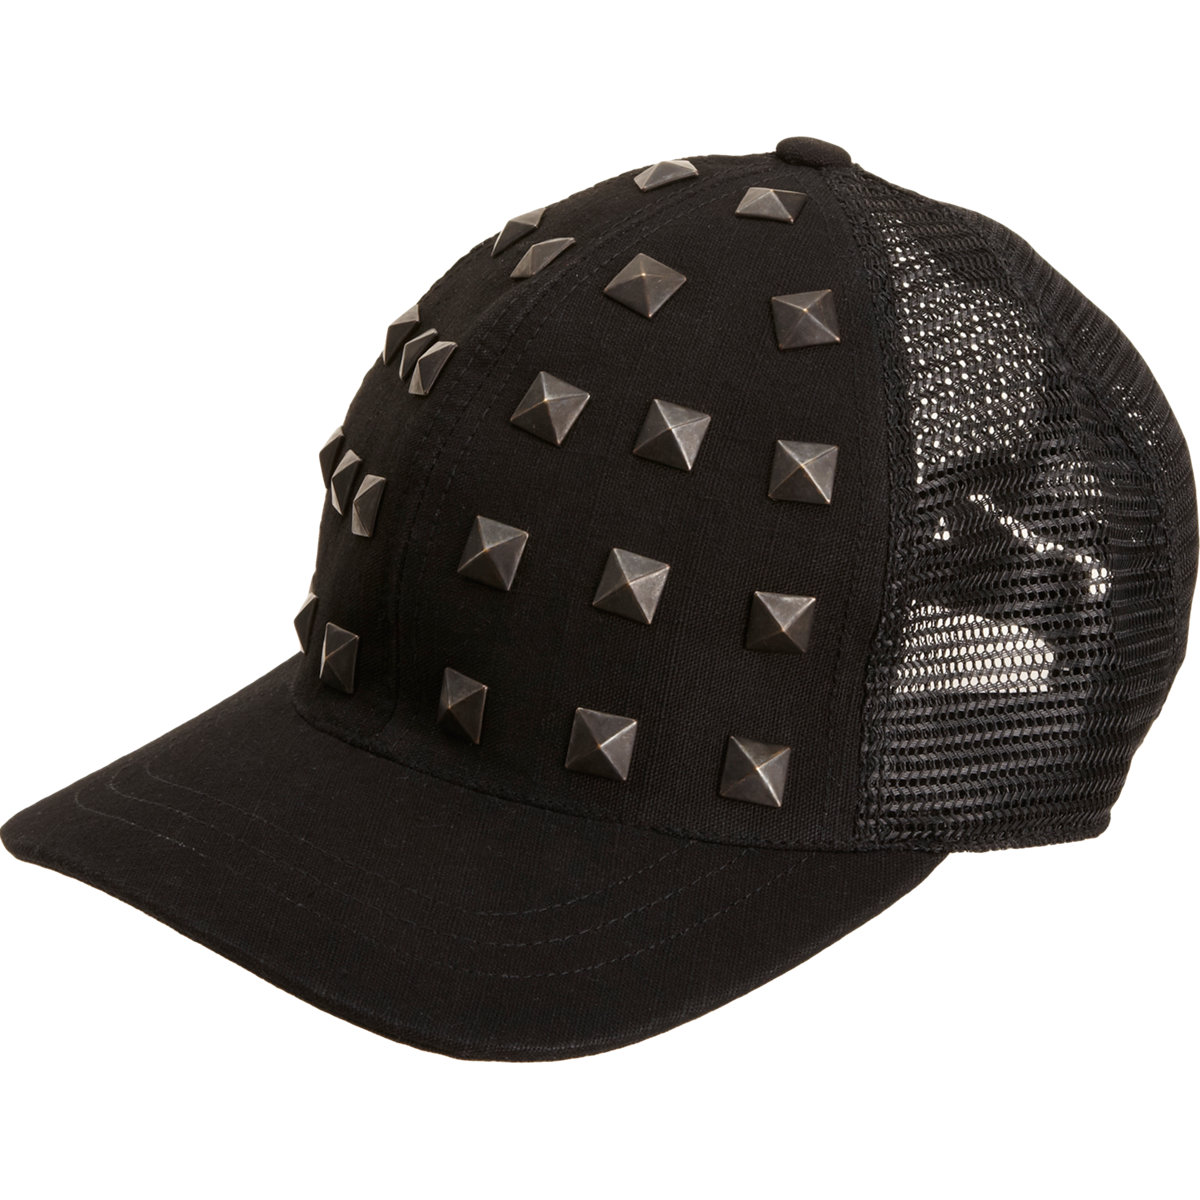 7bdd378ccb9 Nice Collective Pyramid Stud Baseball Cap in Black for Men - Lyst